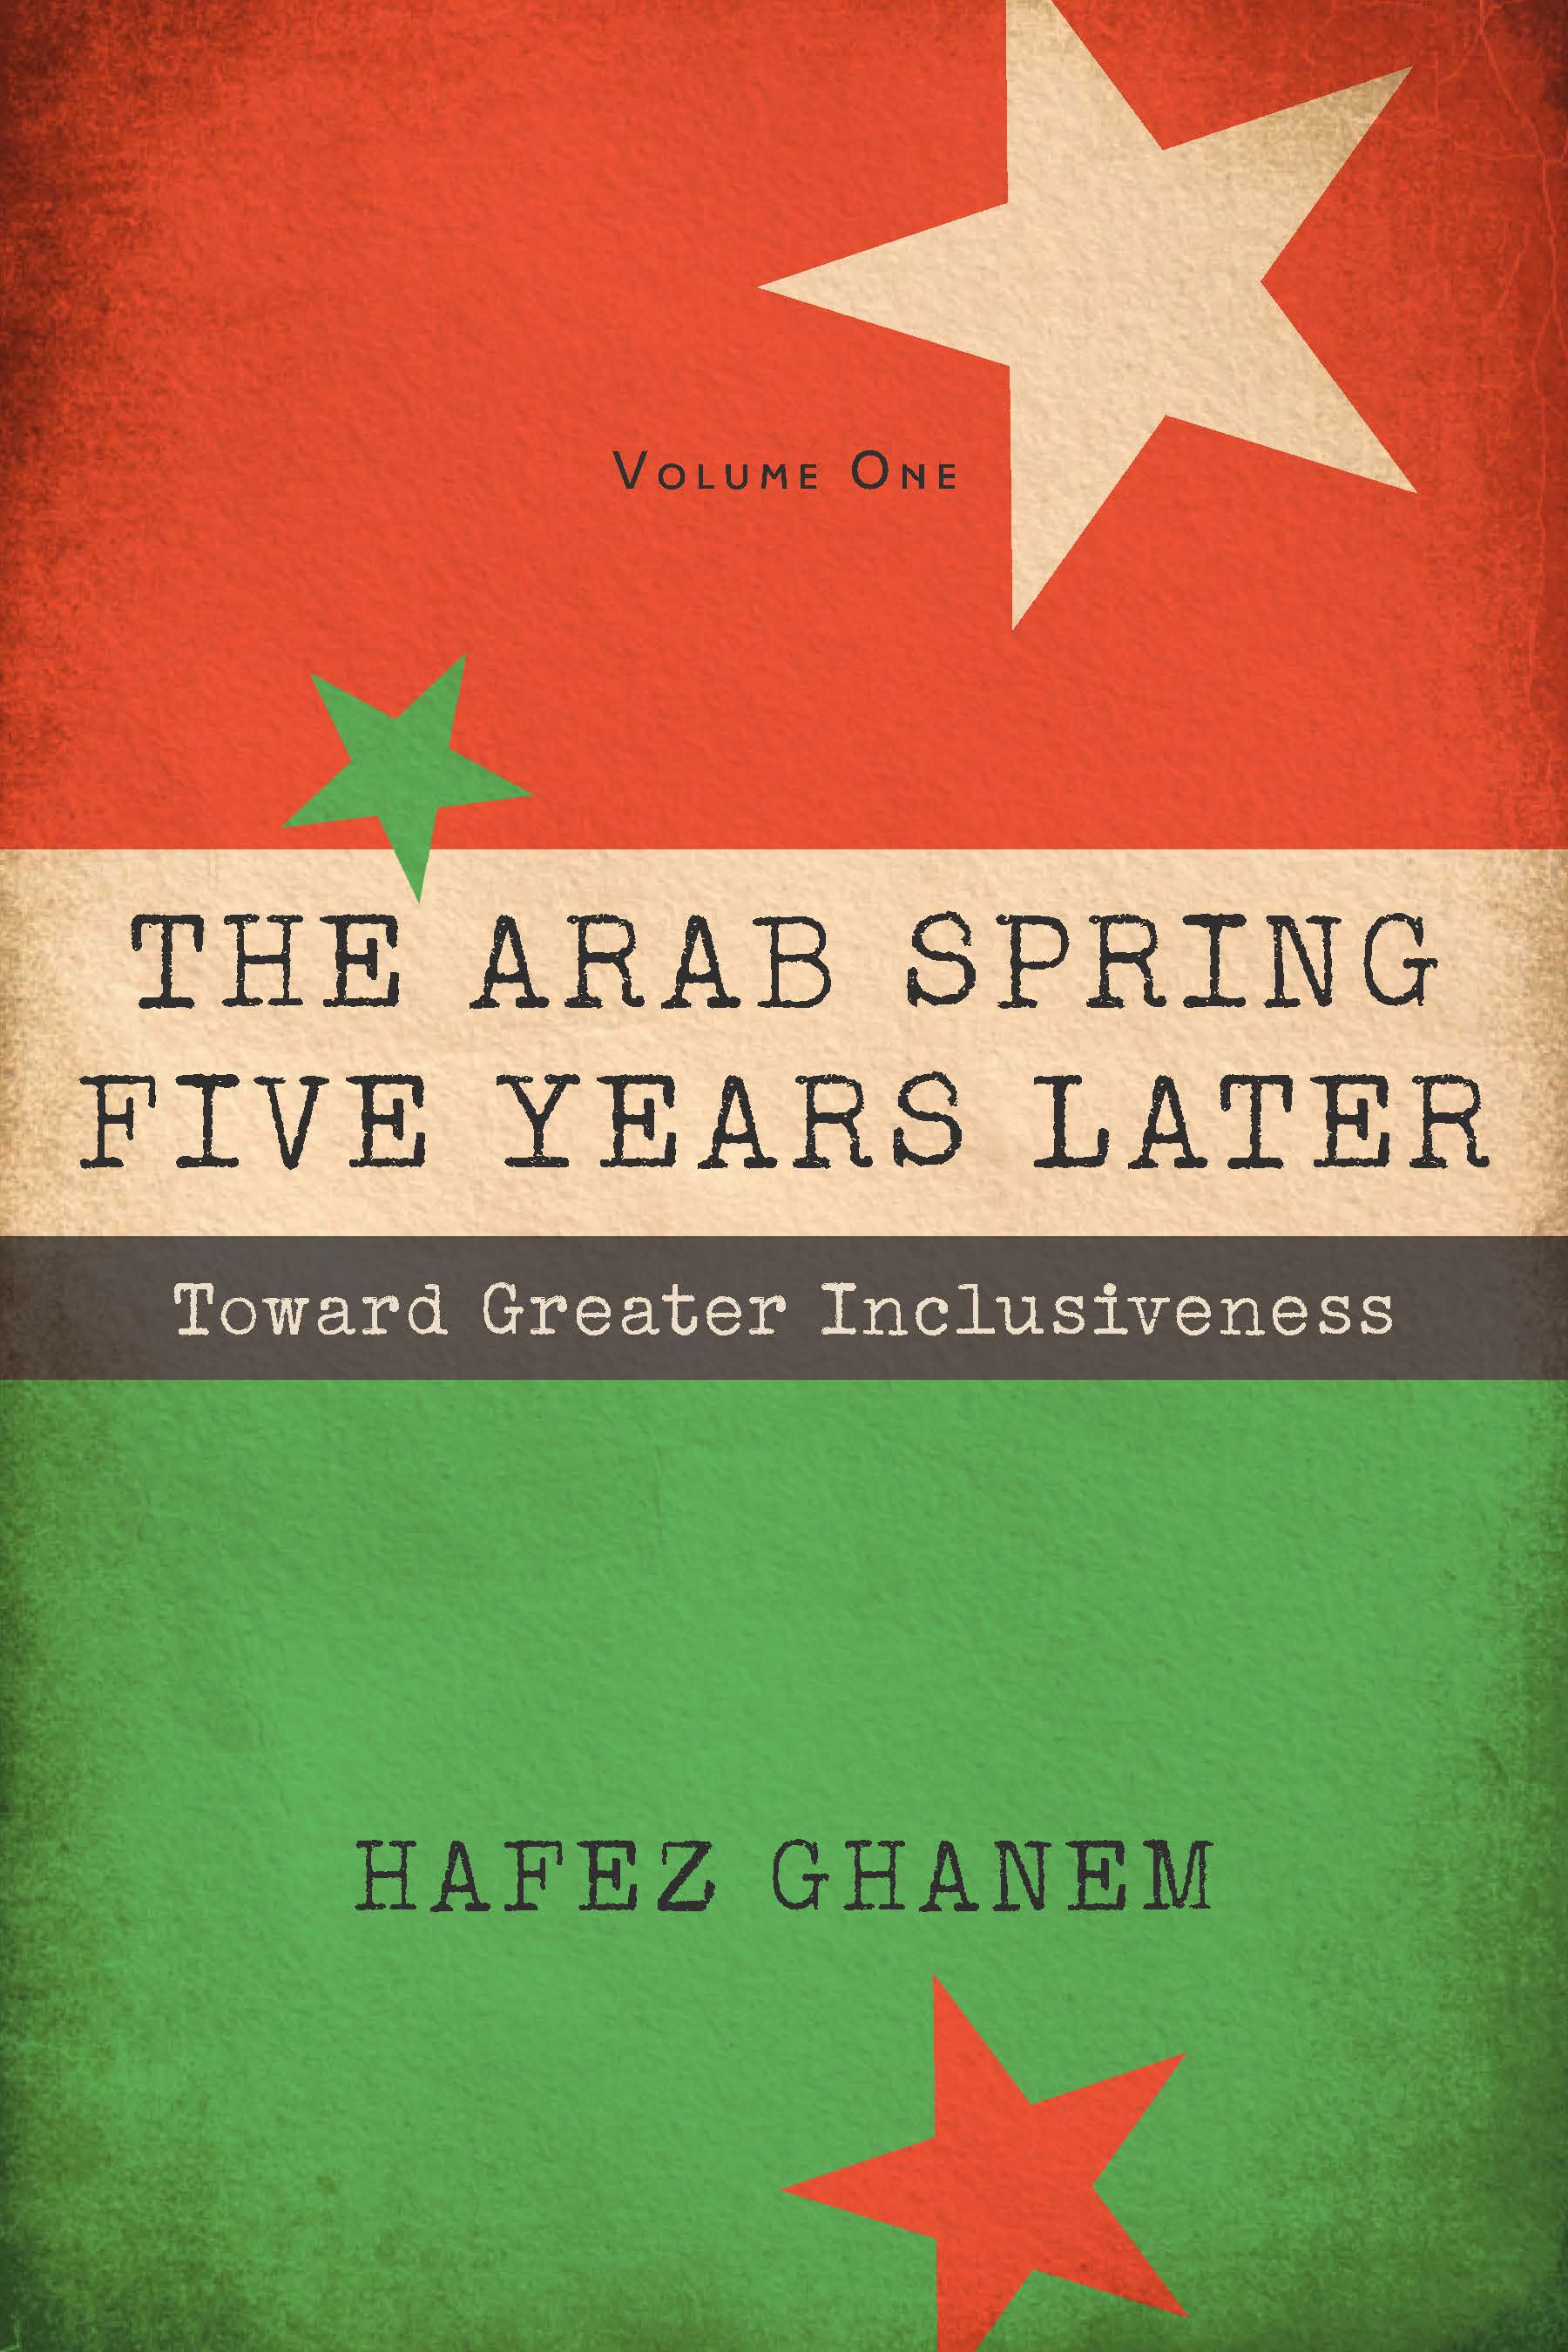 the marshall plan and the shaping of american strategy  arab spring 5 years later vol 1